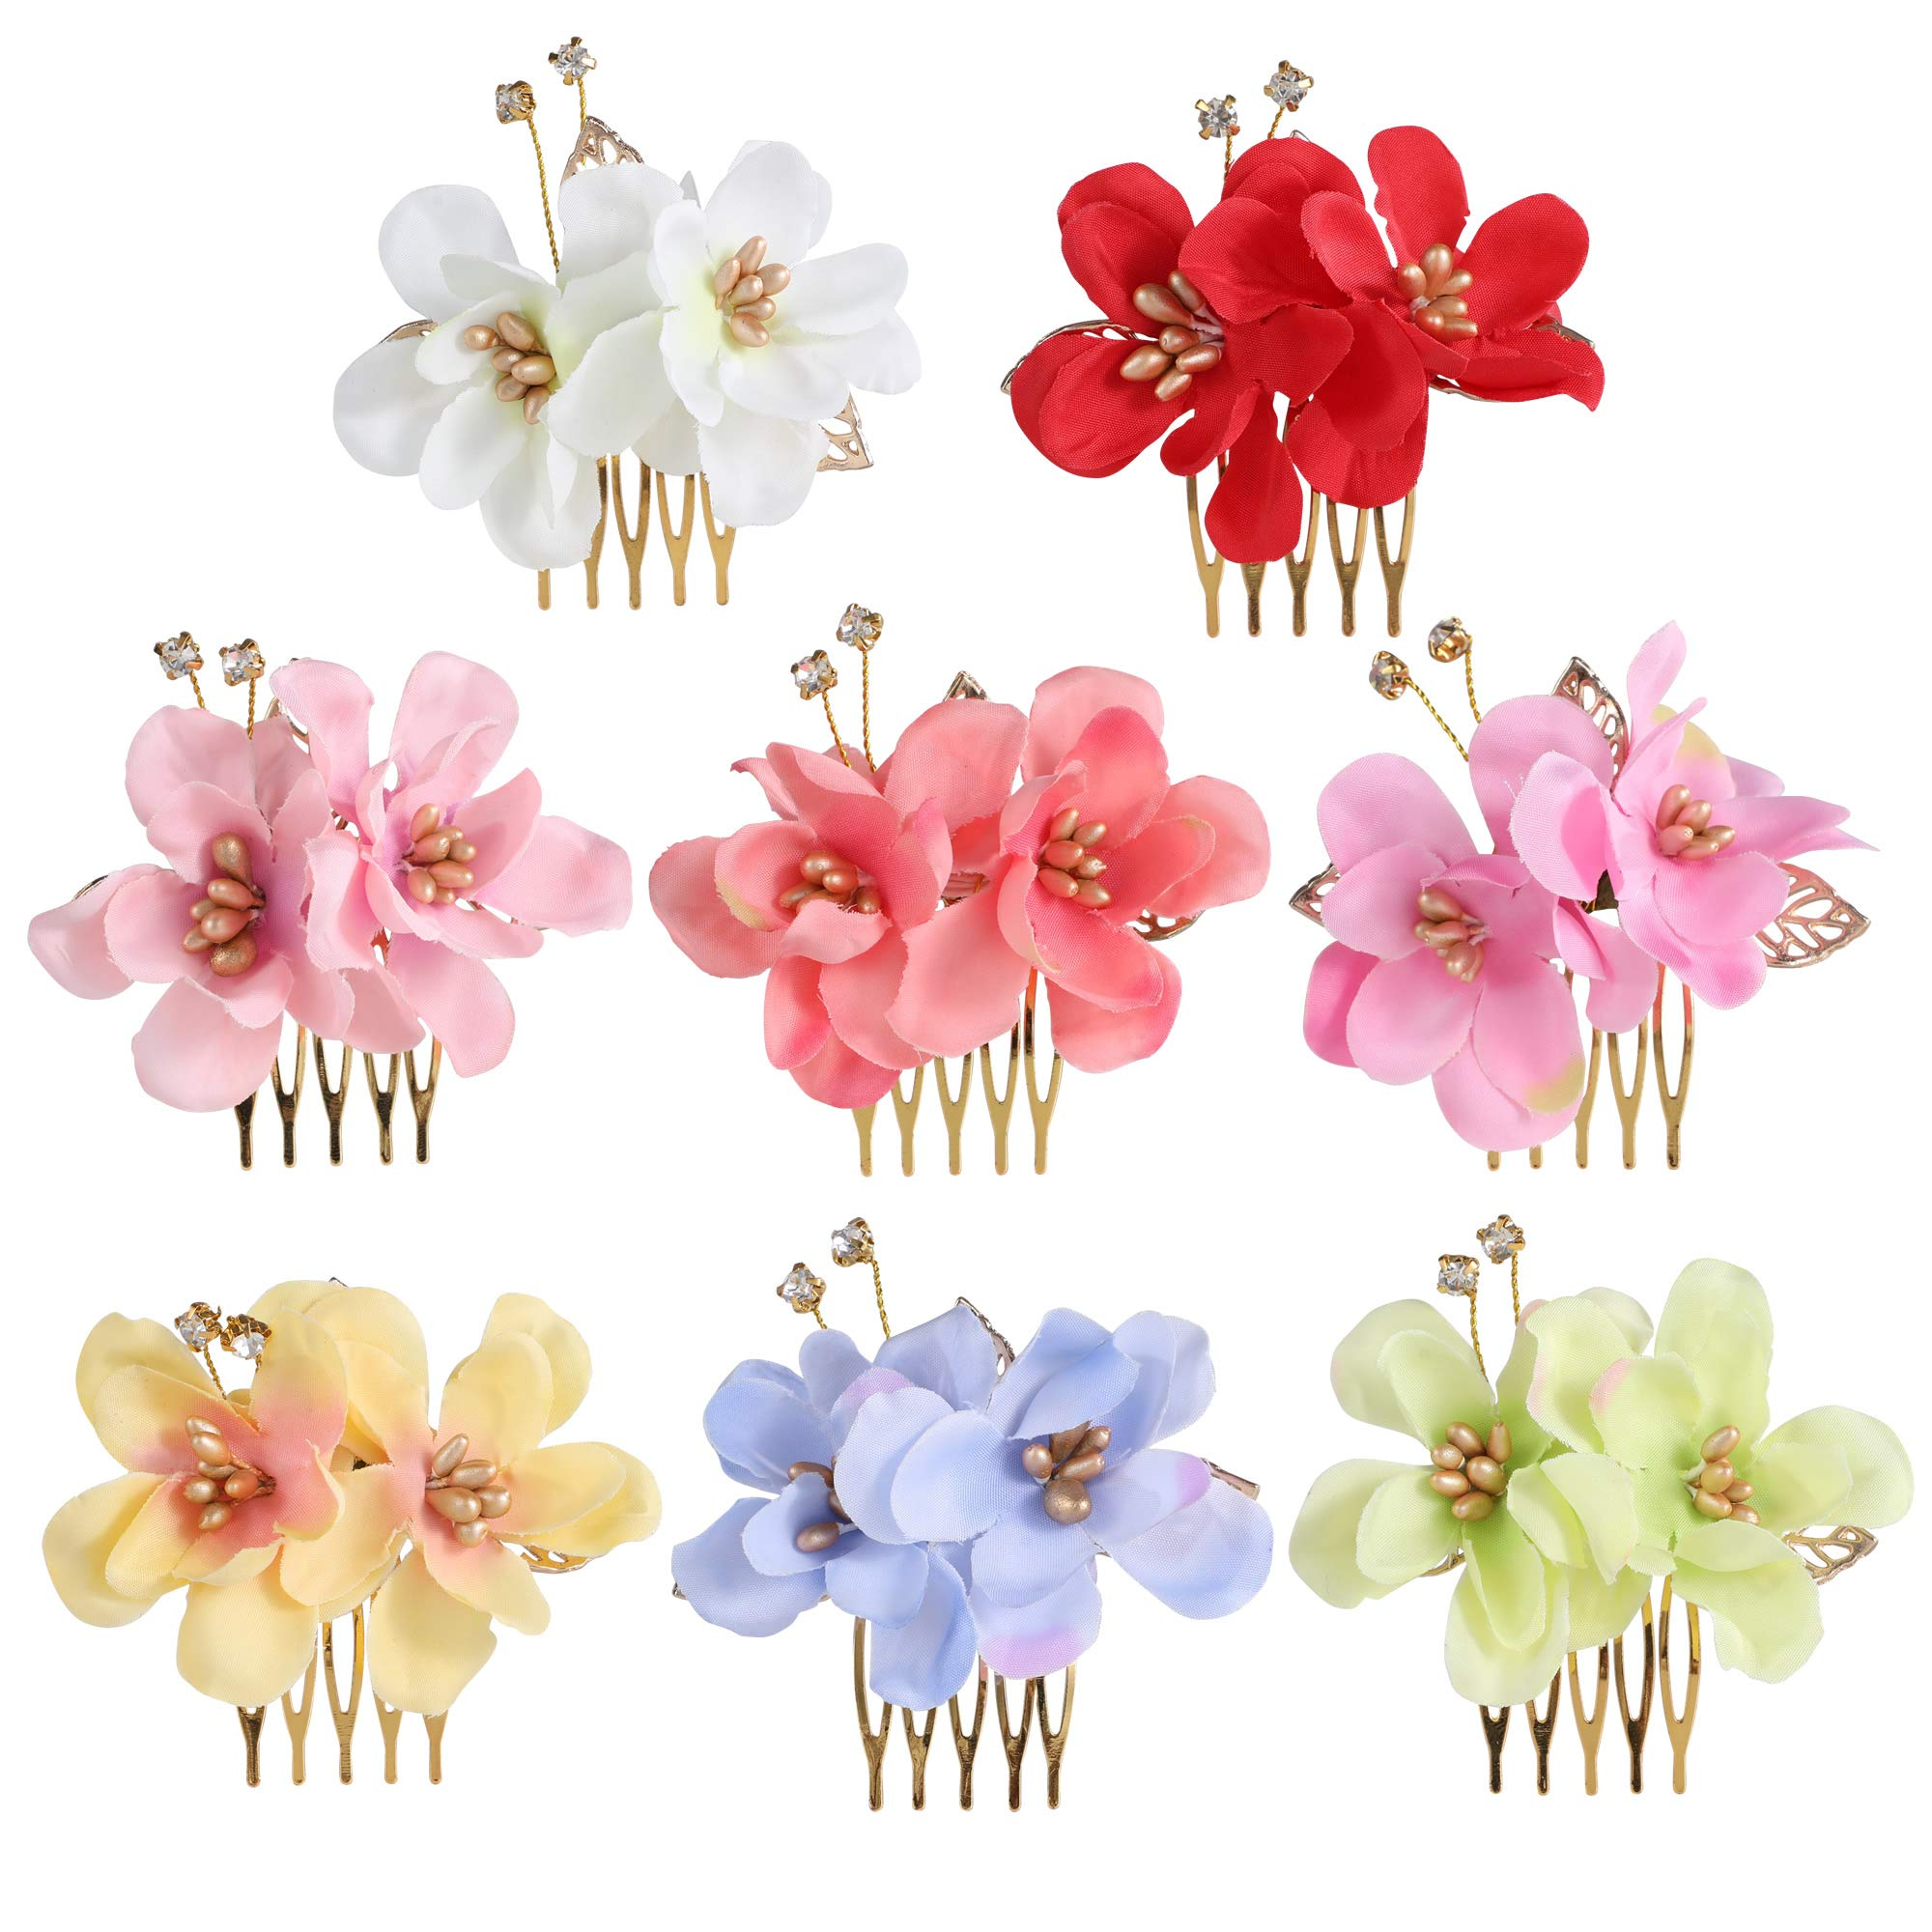 inSowni 8 Pack Hawaiian Luau Party Wedding Bridal Headpiece Artificial Fake Silk Hibiscus Flower Gold Hair Side Combs Clips Pins Barrettes for Women Girls Brides by inSowni